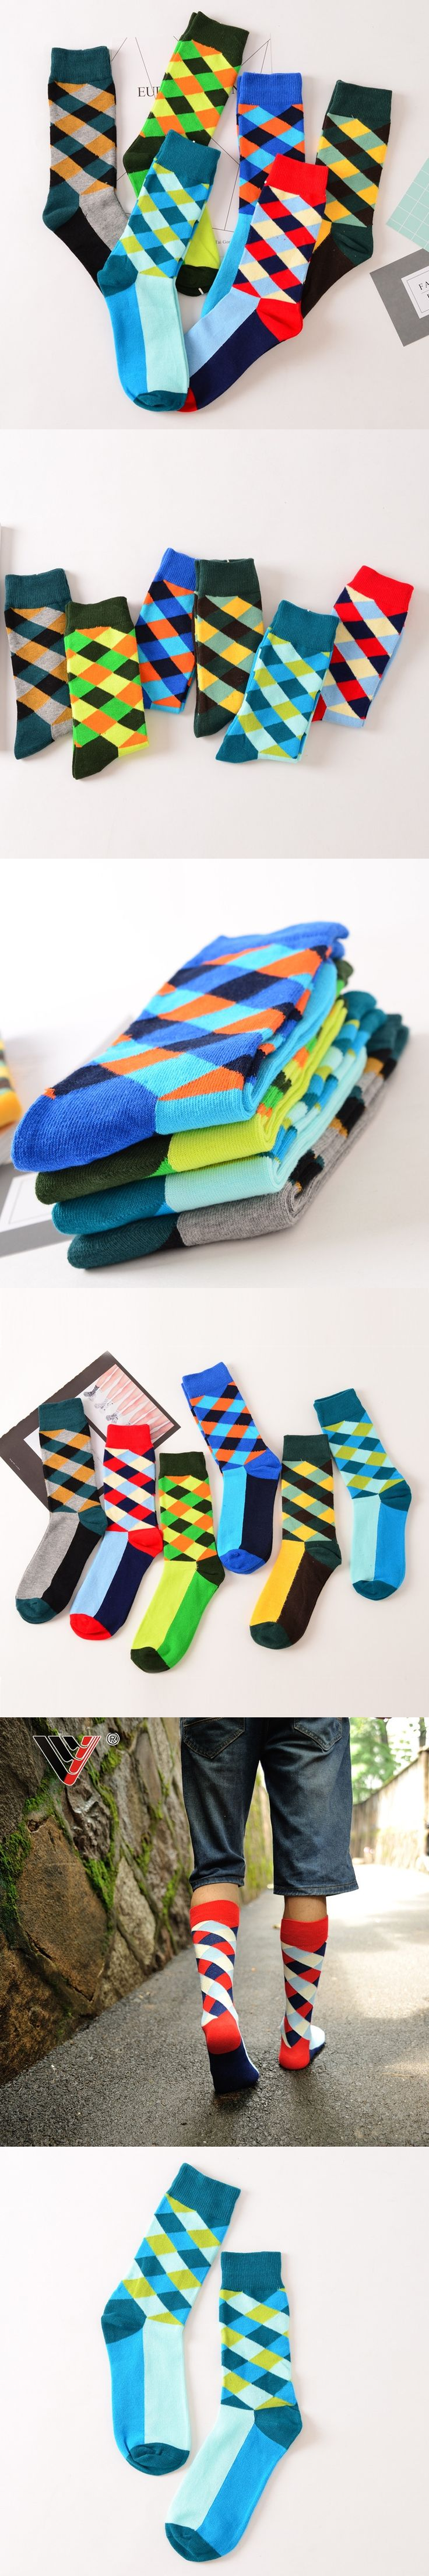 6 pairs Male Art Socks  New Brand Happy Socks Gradient Color Paragraph British Style Pure Cotton Stockings Men's In Tube Socks